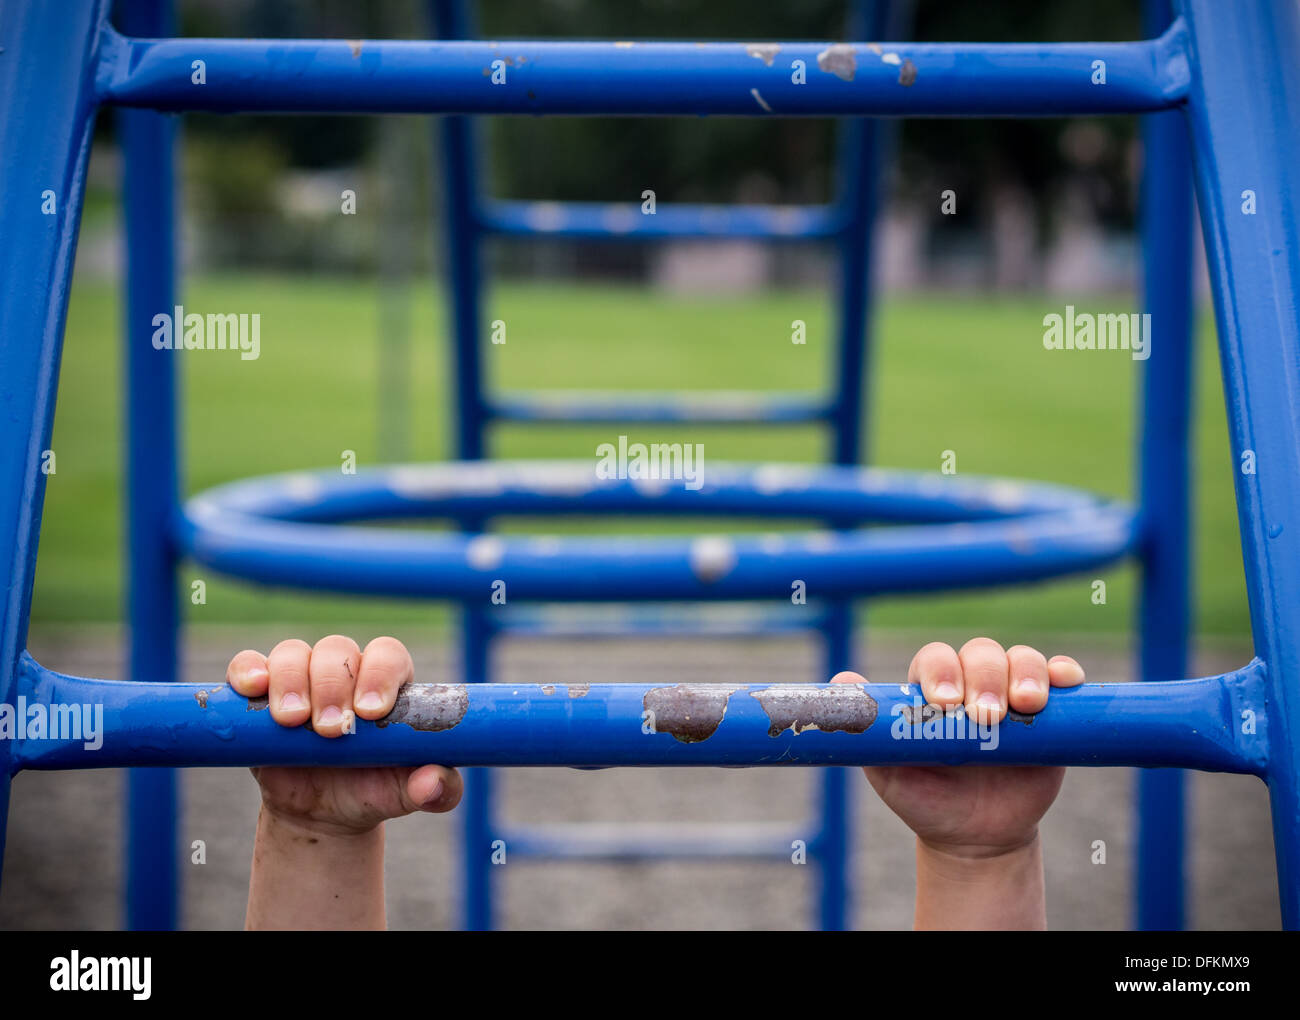 Hold on concept with child hanging on monkey bars - Stock Image